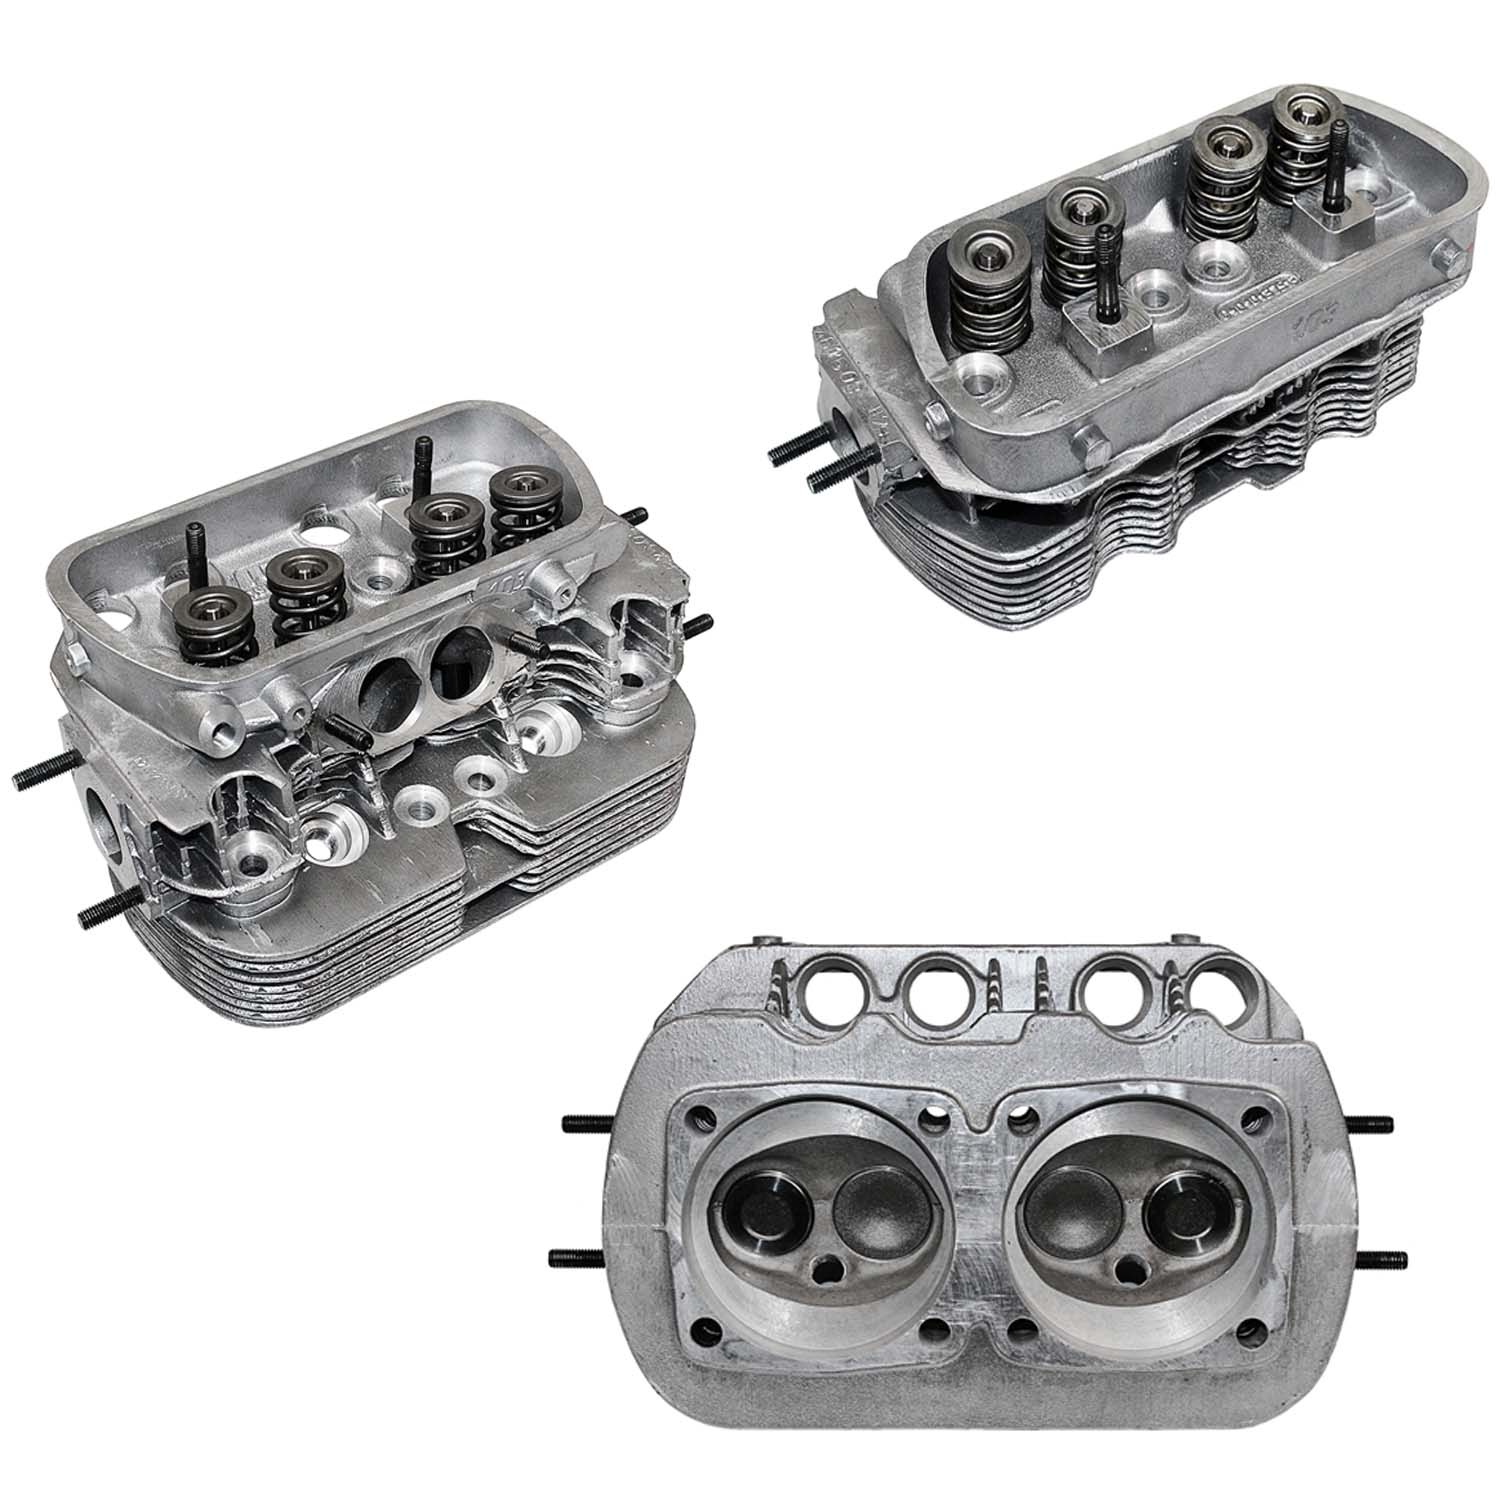 Cylinder Heads - Stock